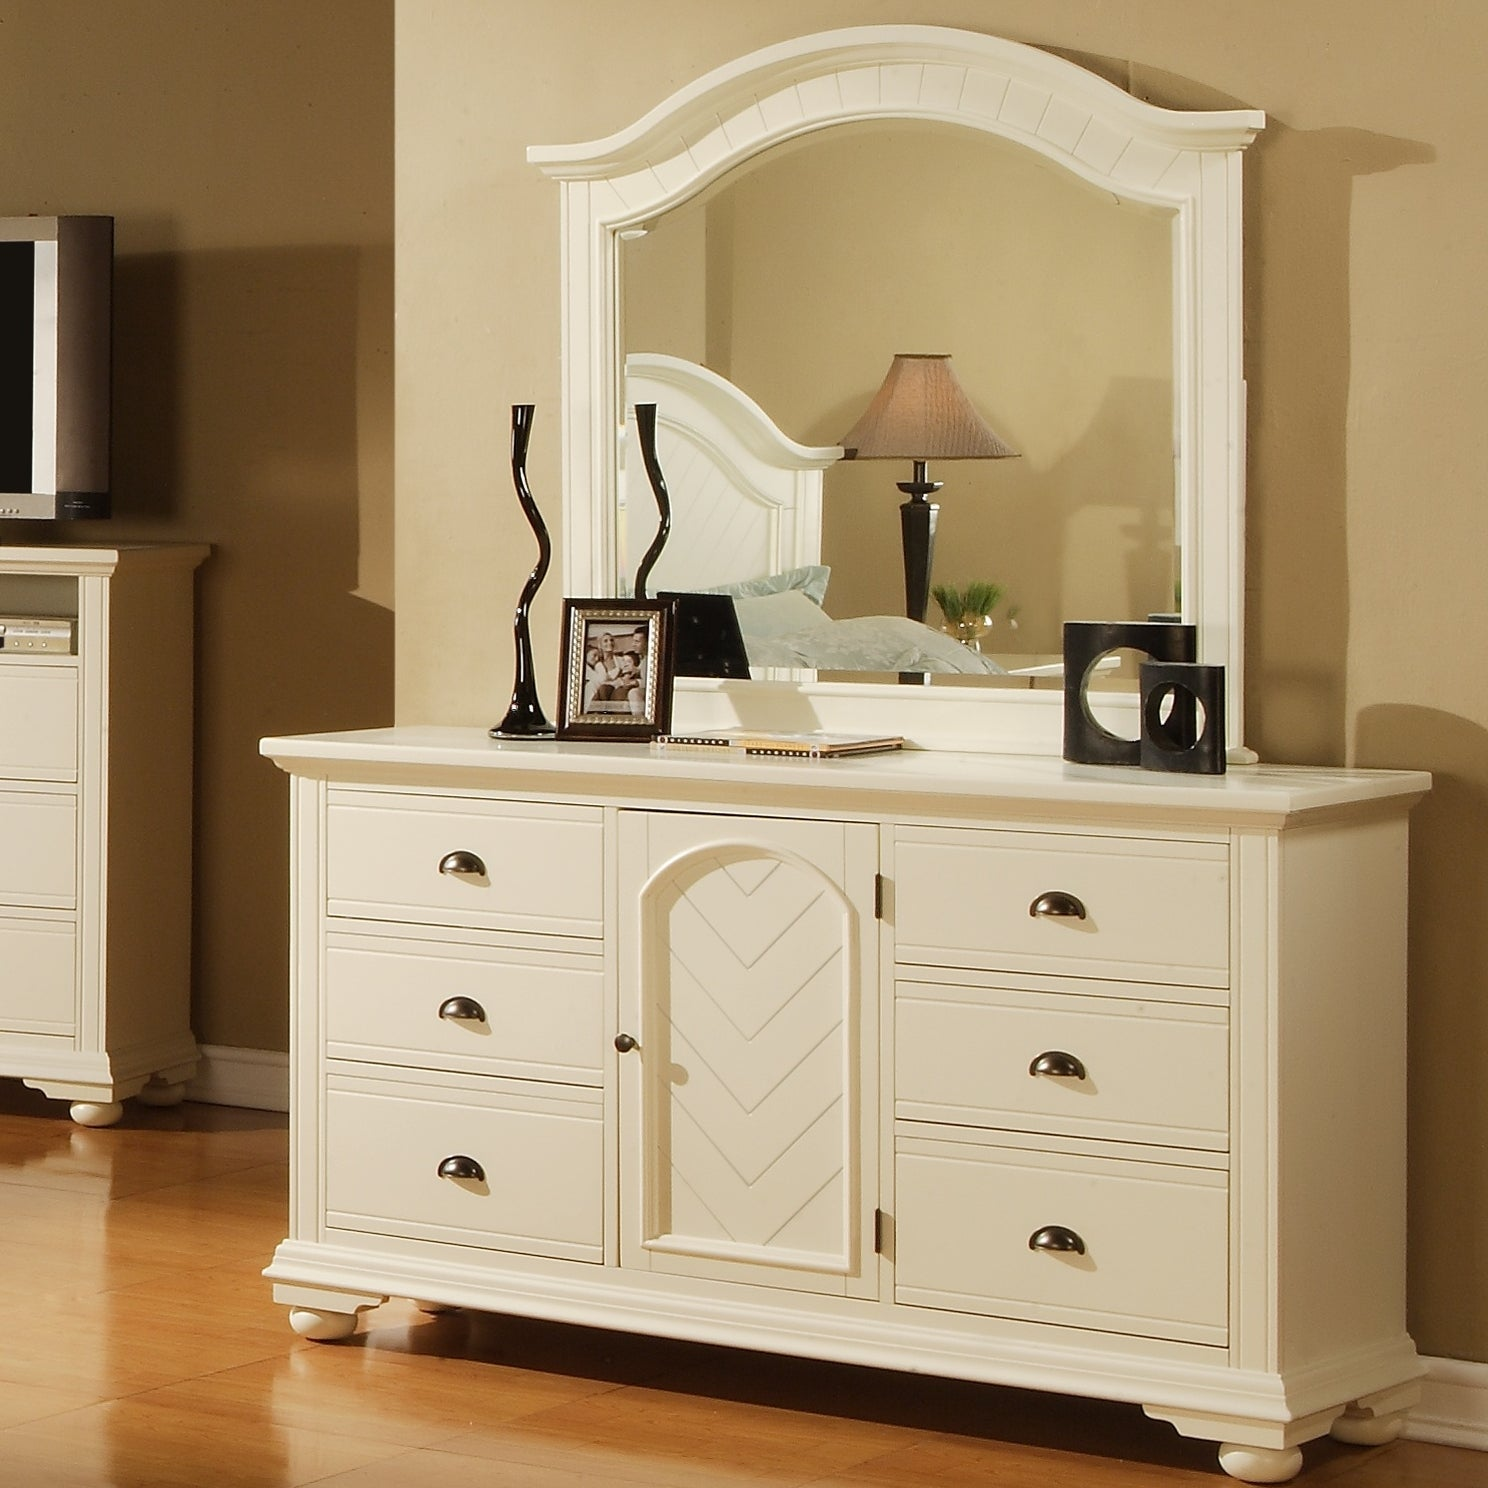 dresser and mirror overstock shopping great deals on dressers